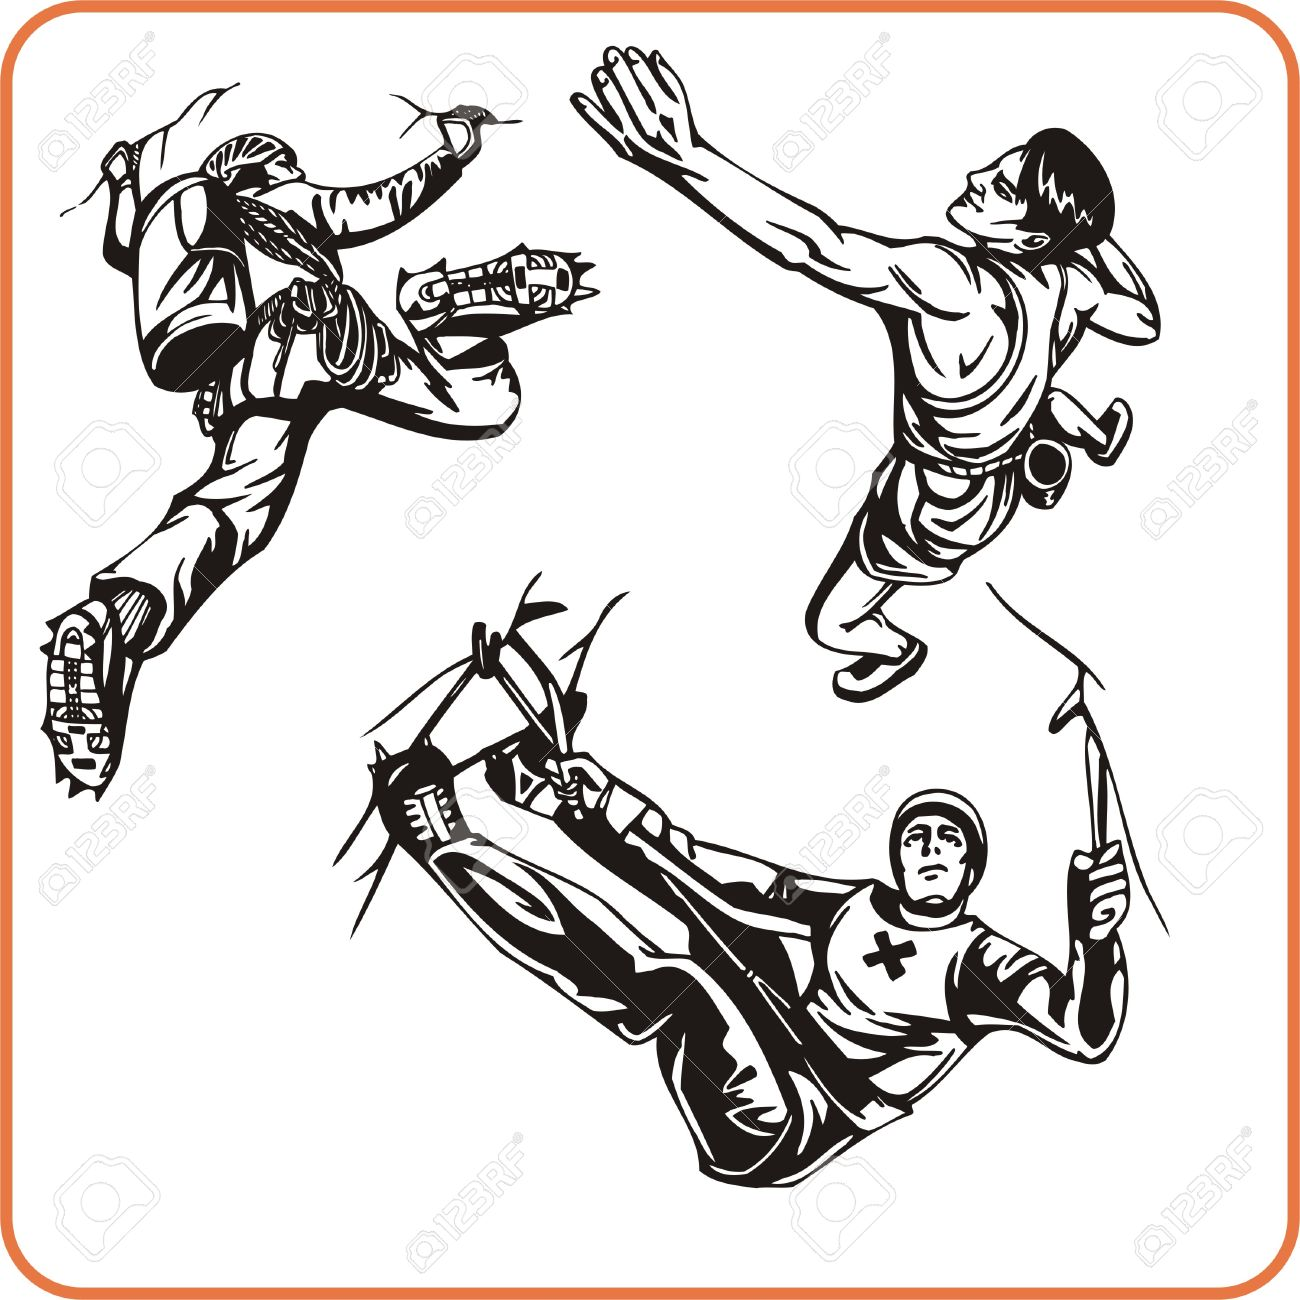 Extreme Climbing clipart #5, Download drawings